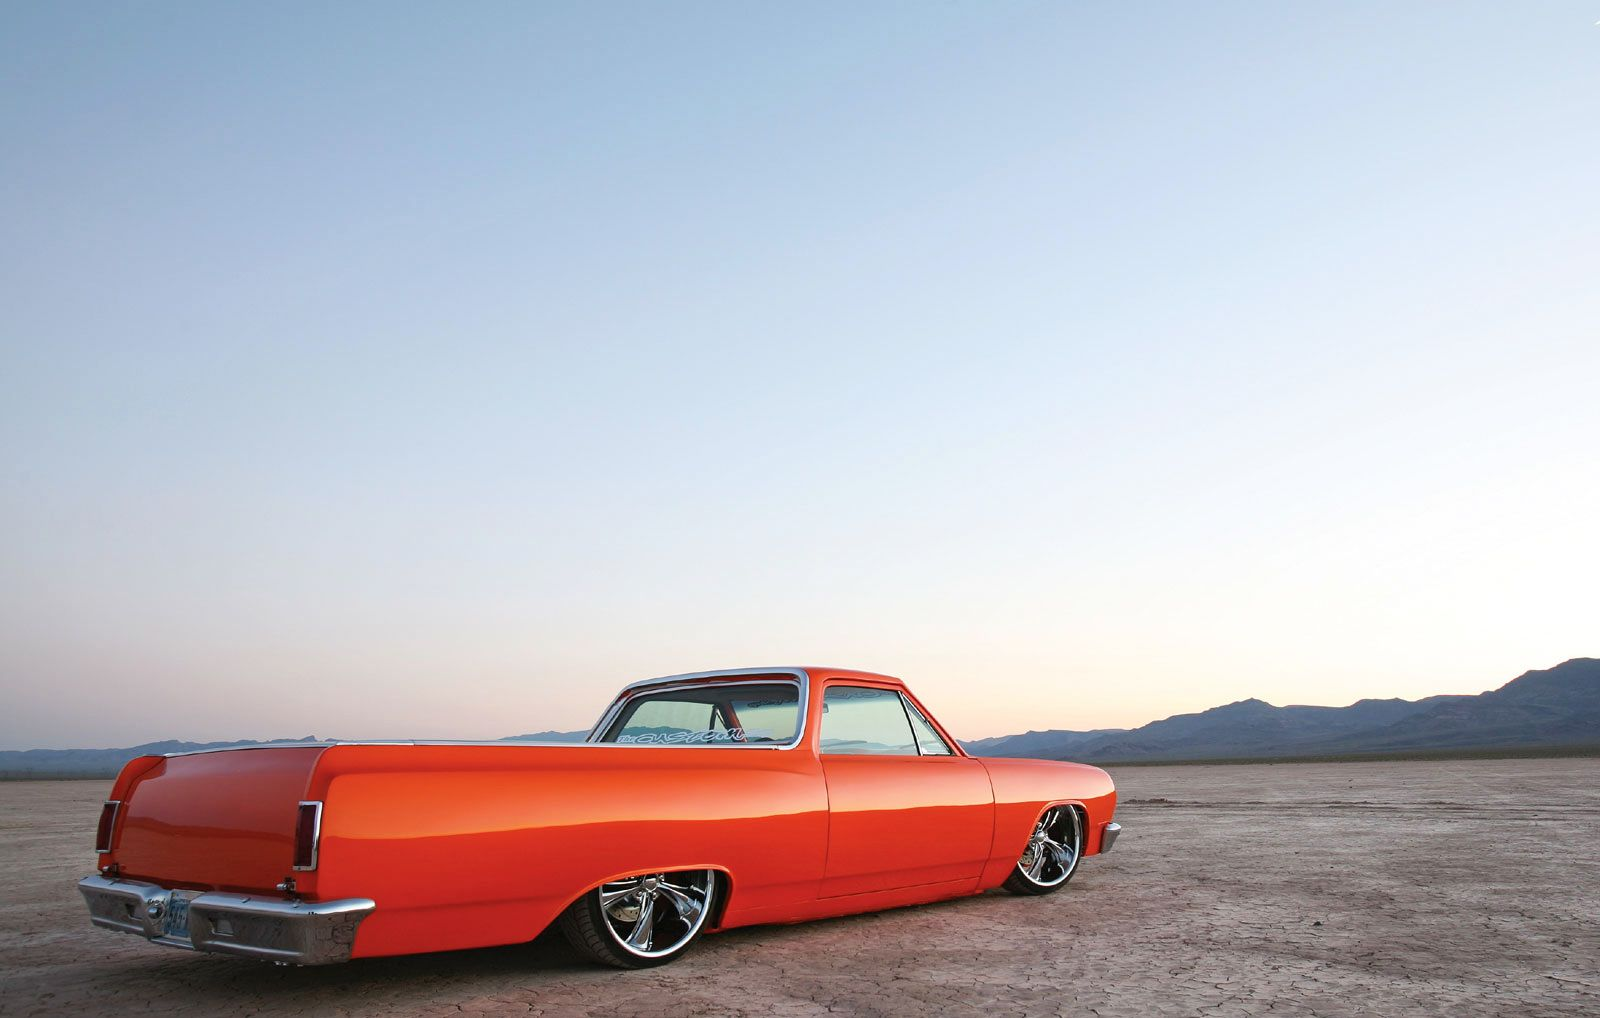 Download Free Lowrider Wallpapers For Your Mobile Phone Most S